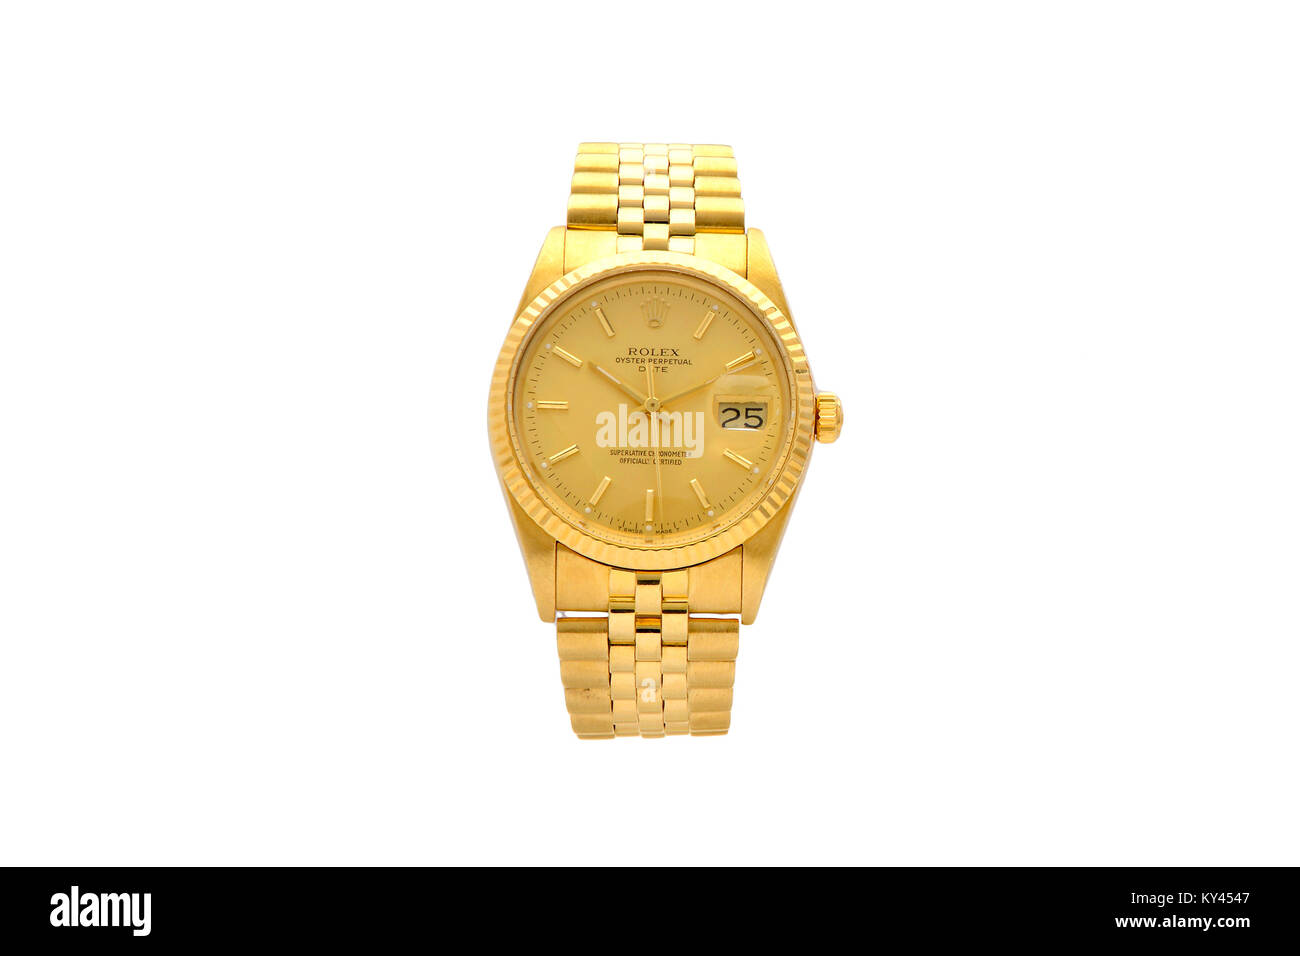 Rolex Oyster gold men's watch with gold face Stock Photo